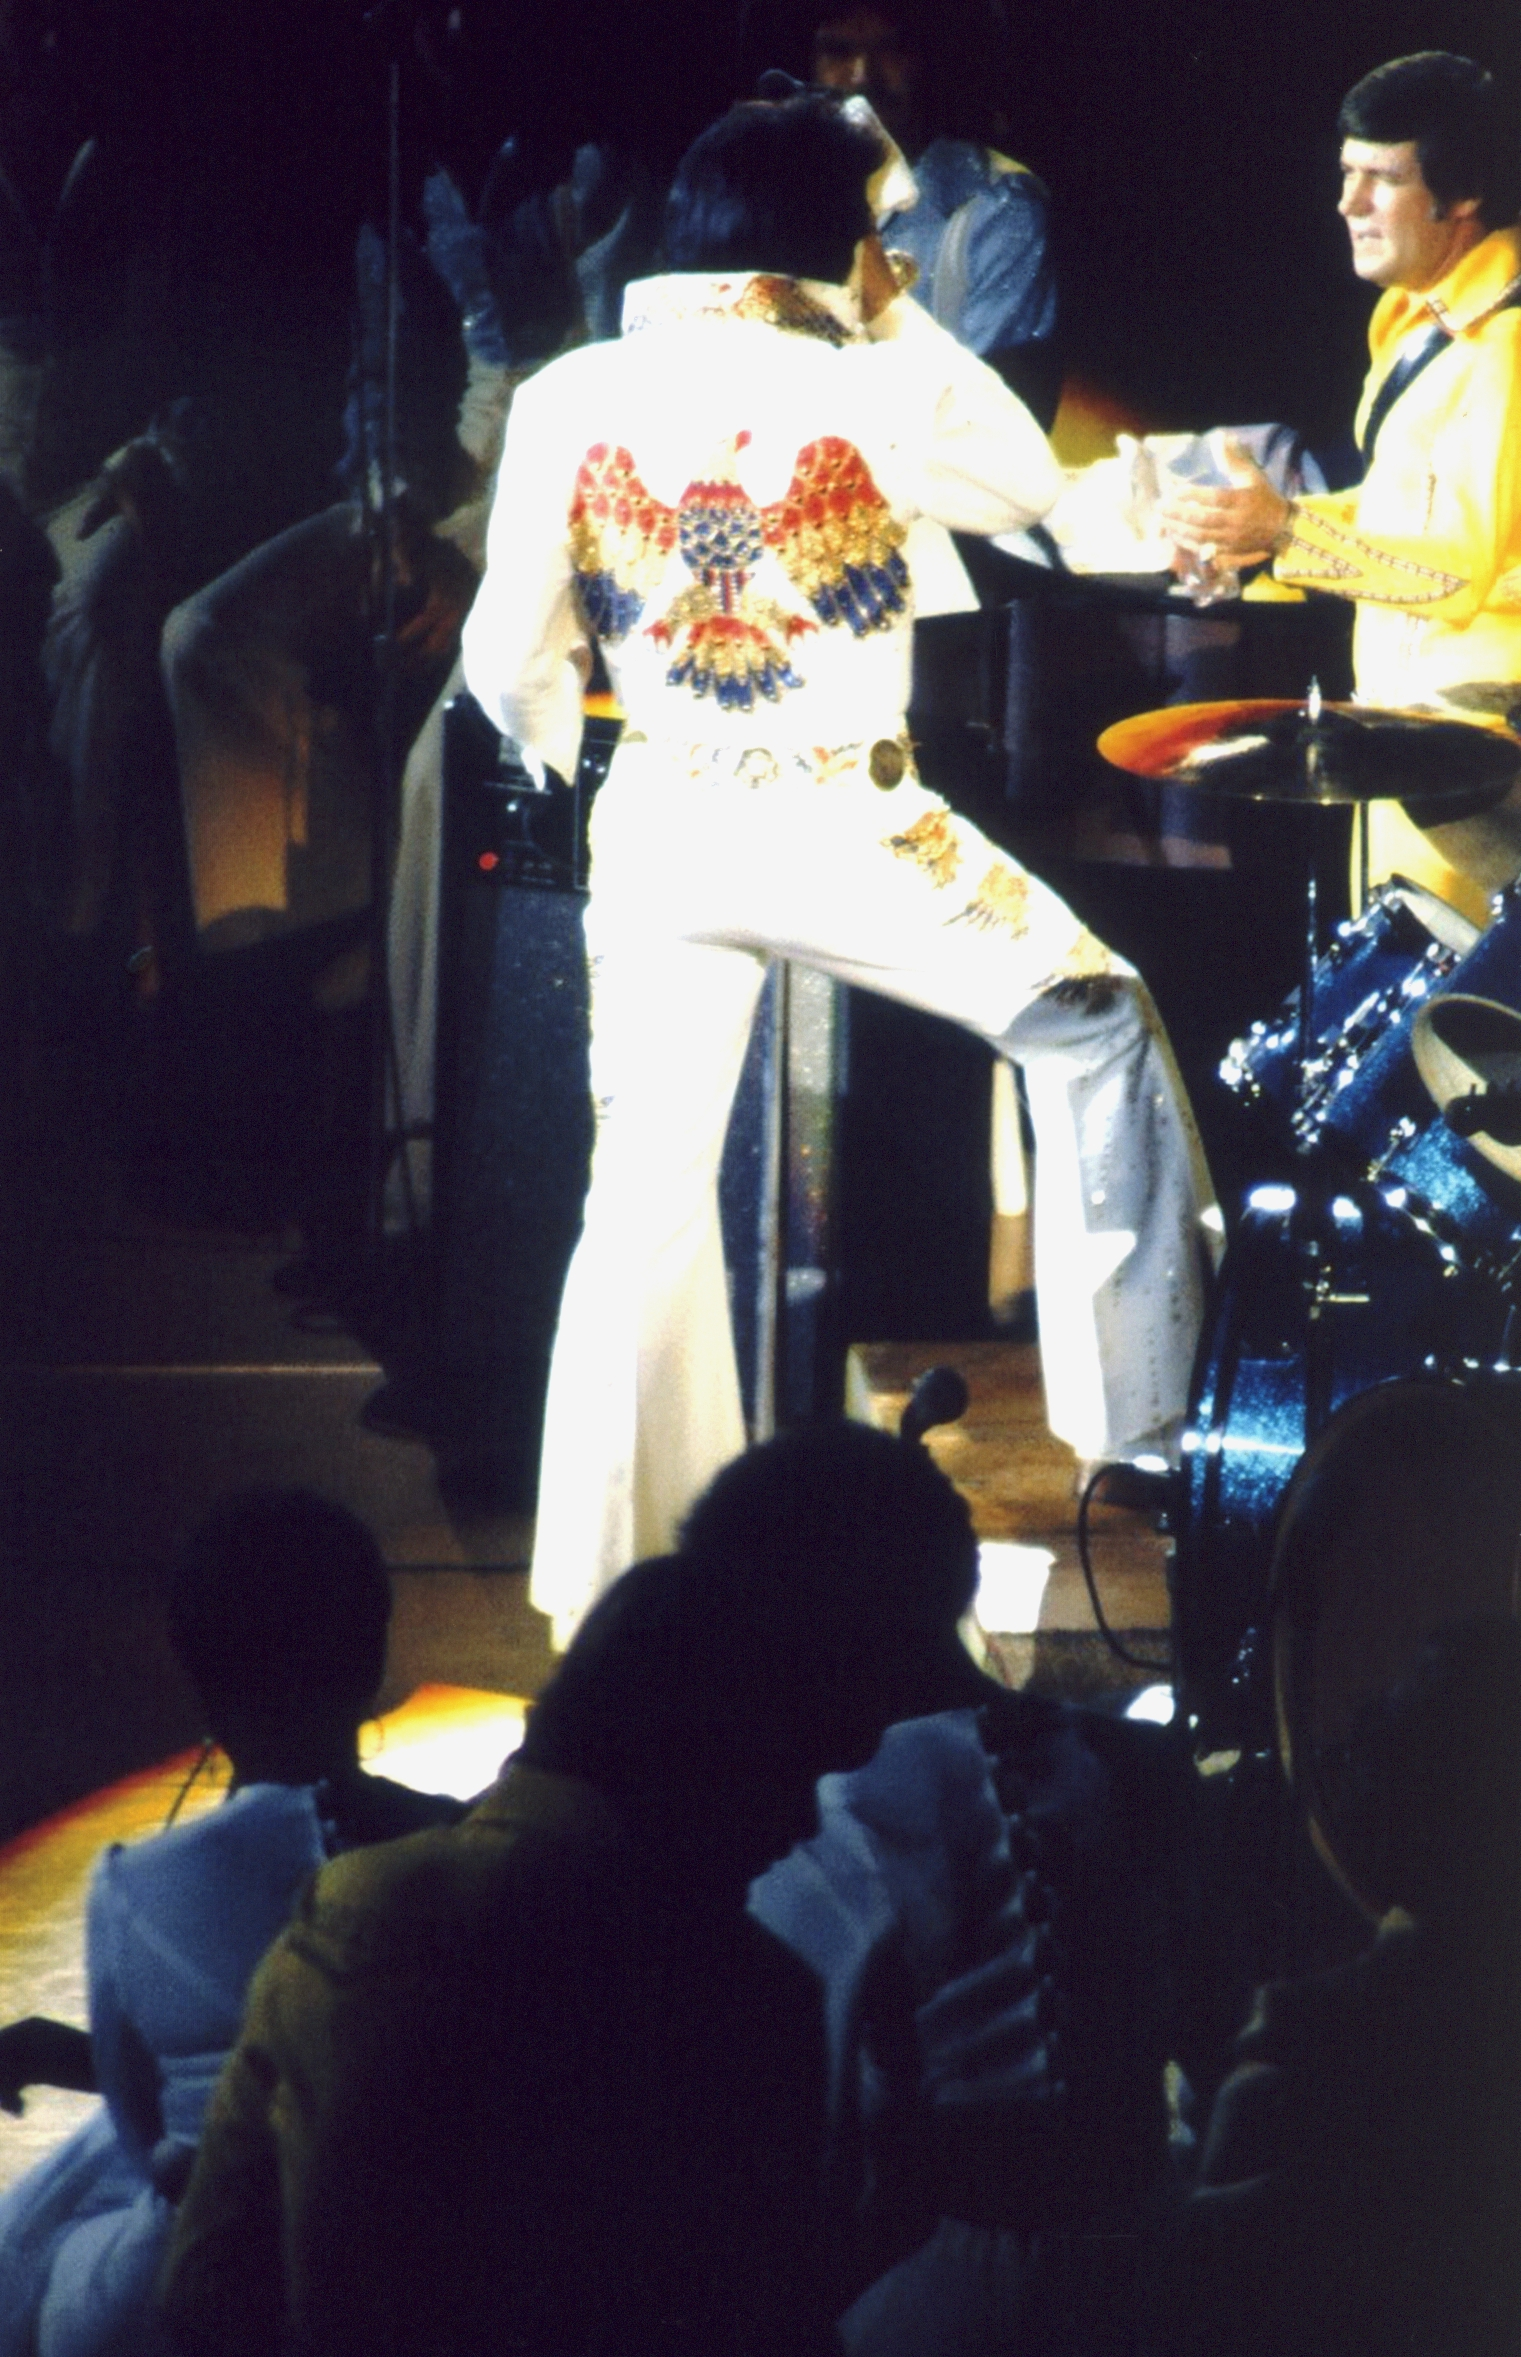 https://i1.wp.com/www.elvisconcerts.com/pictures/s74062503.jpg